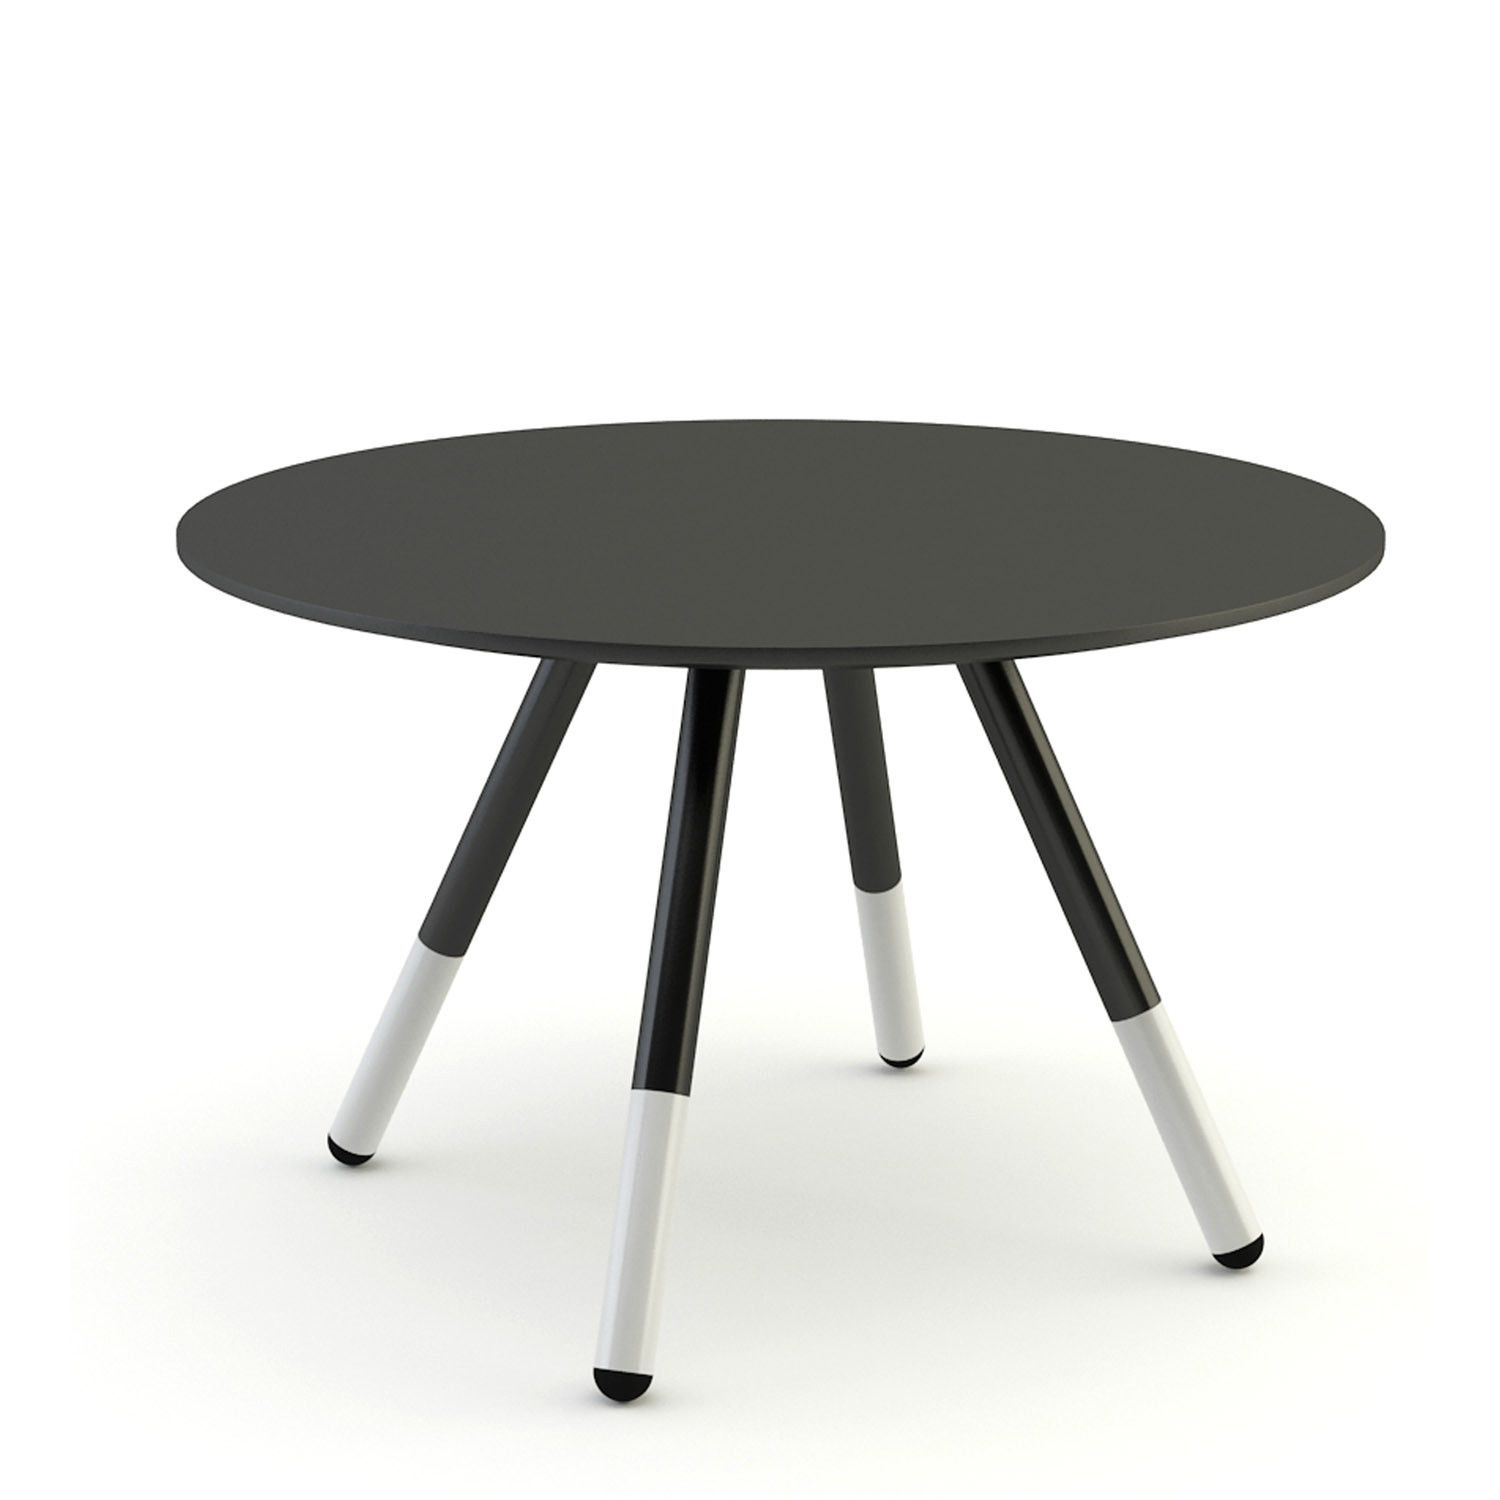 Daywalker Round Coffee Table